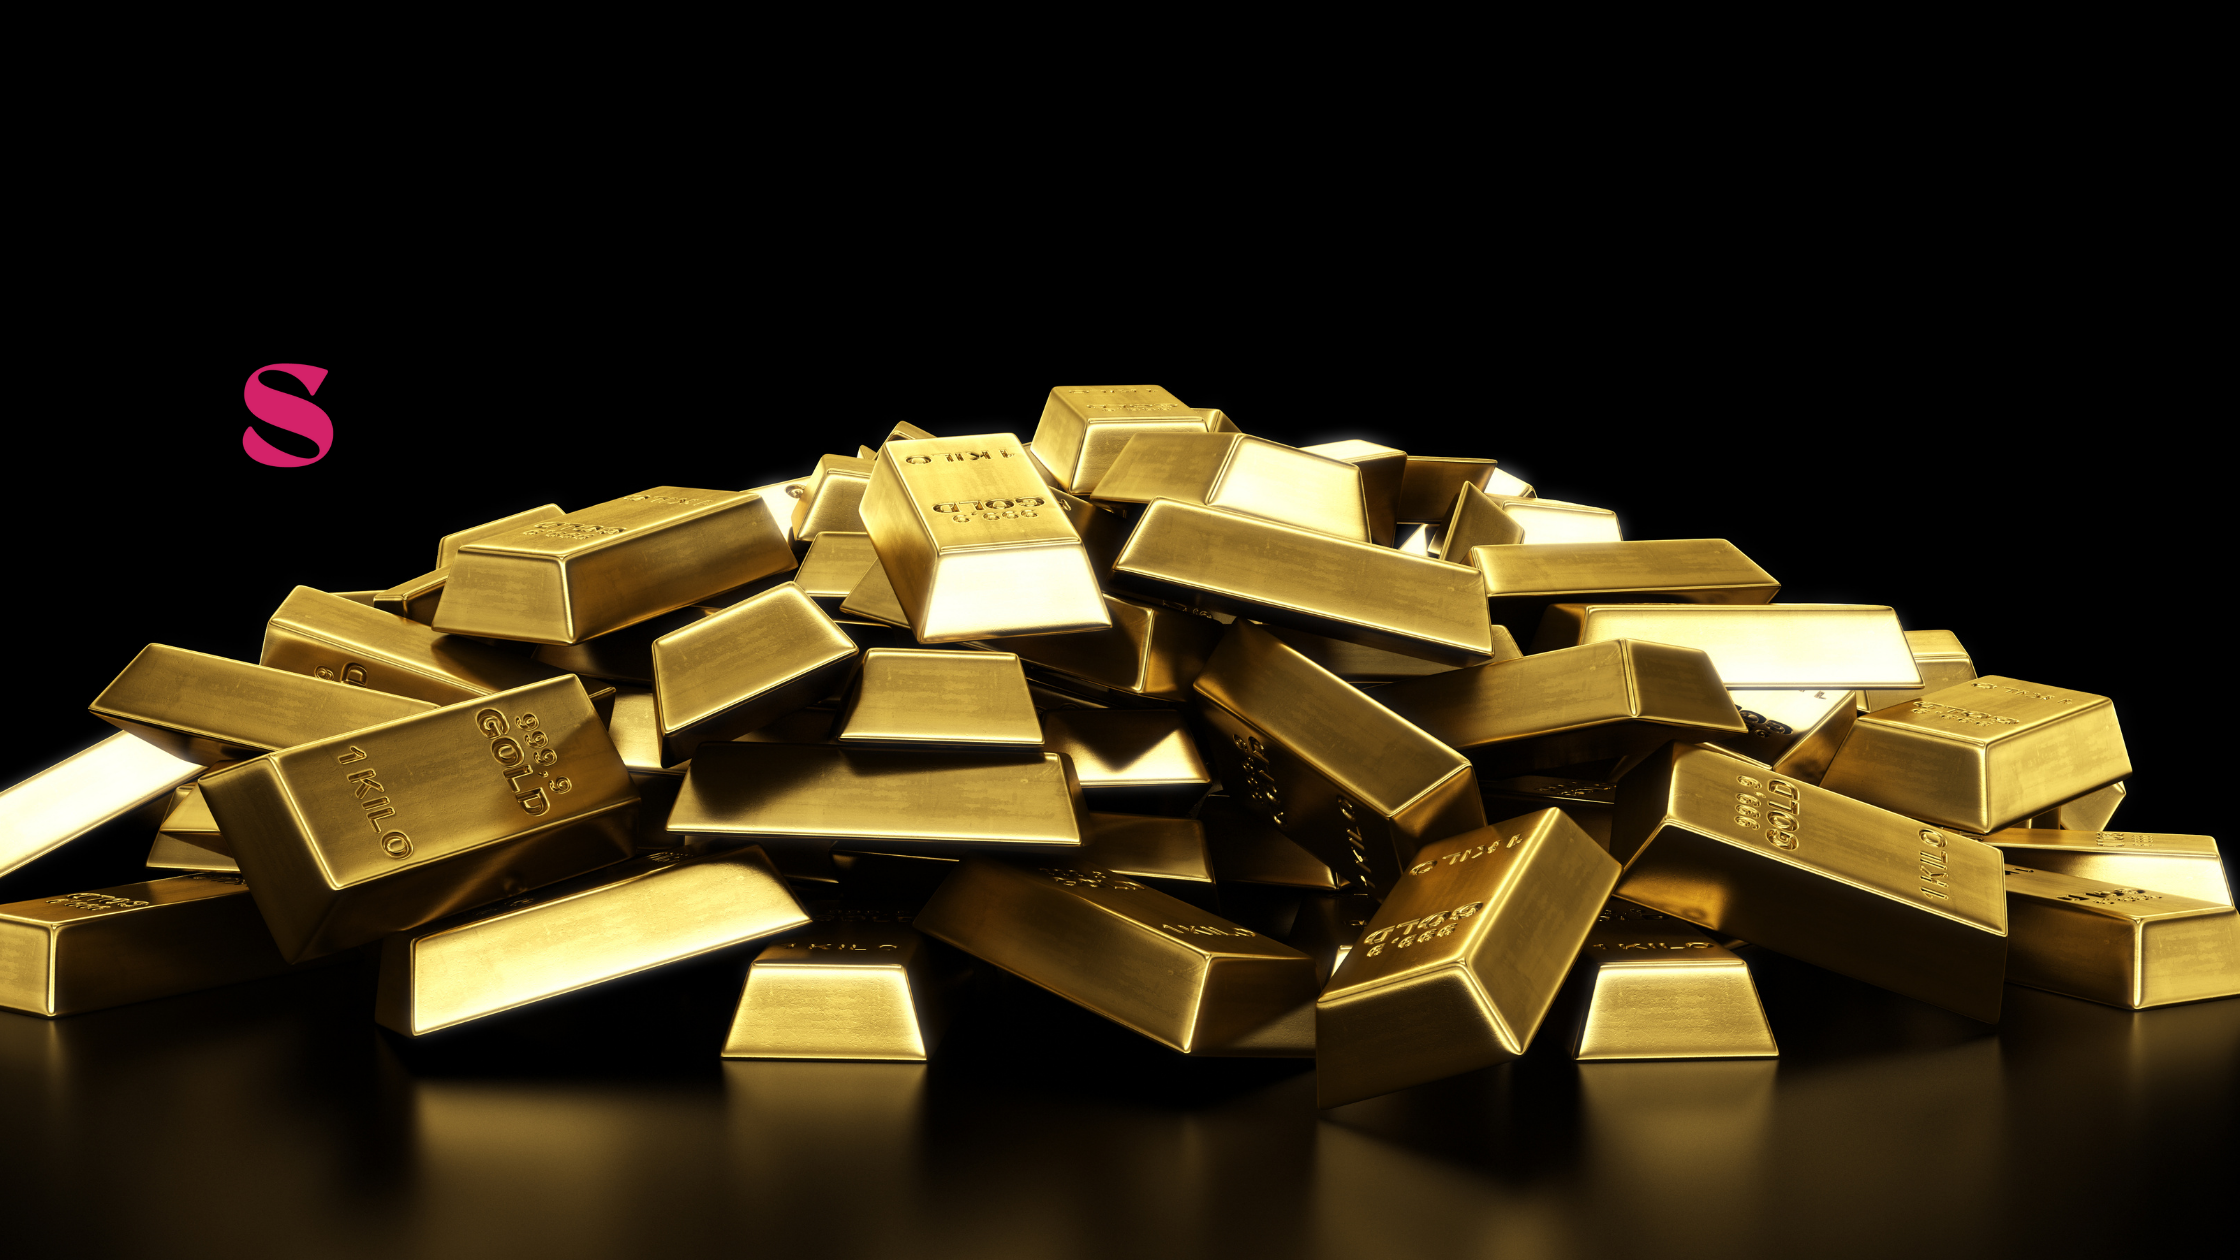 Sahoja tackles poverty alleviation by making gold affordable for everyone